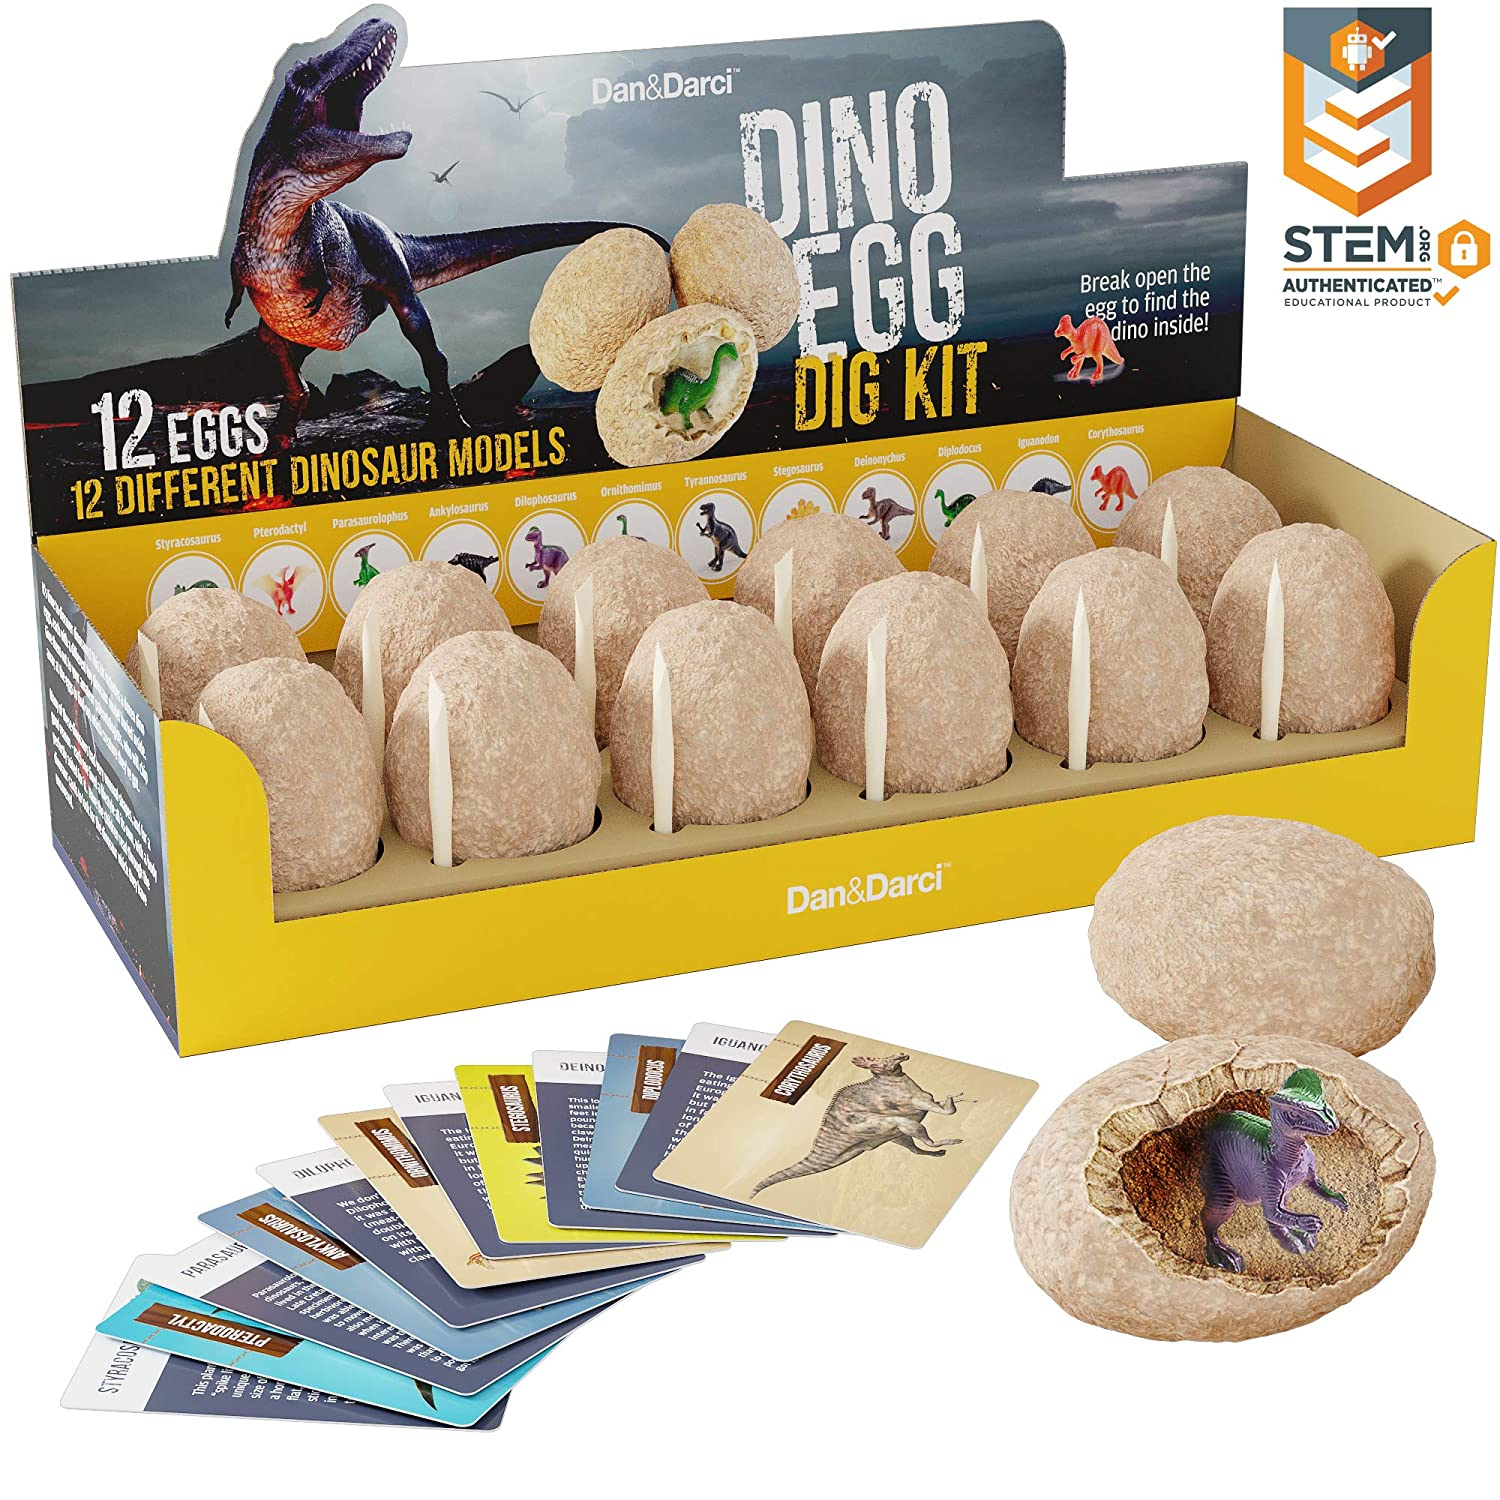 Dino Egg Dig Kit – Break Open 12 Unique Dinosaur Eggs and Discover 12 Cute Dinosaurs – Easter Archaeology Science STEM Gift